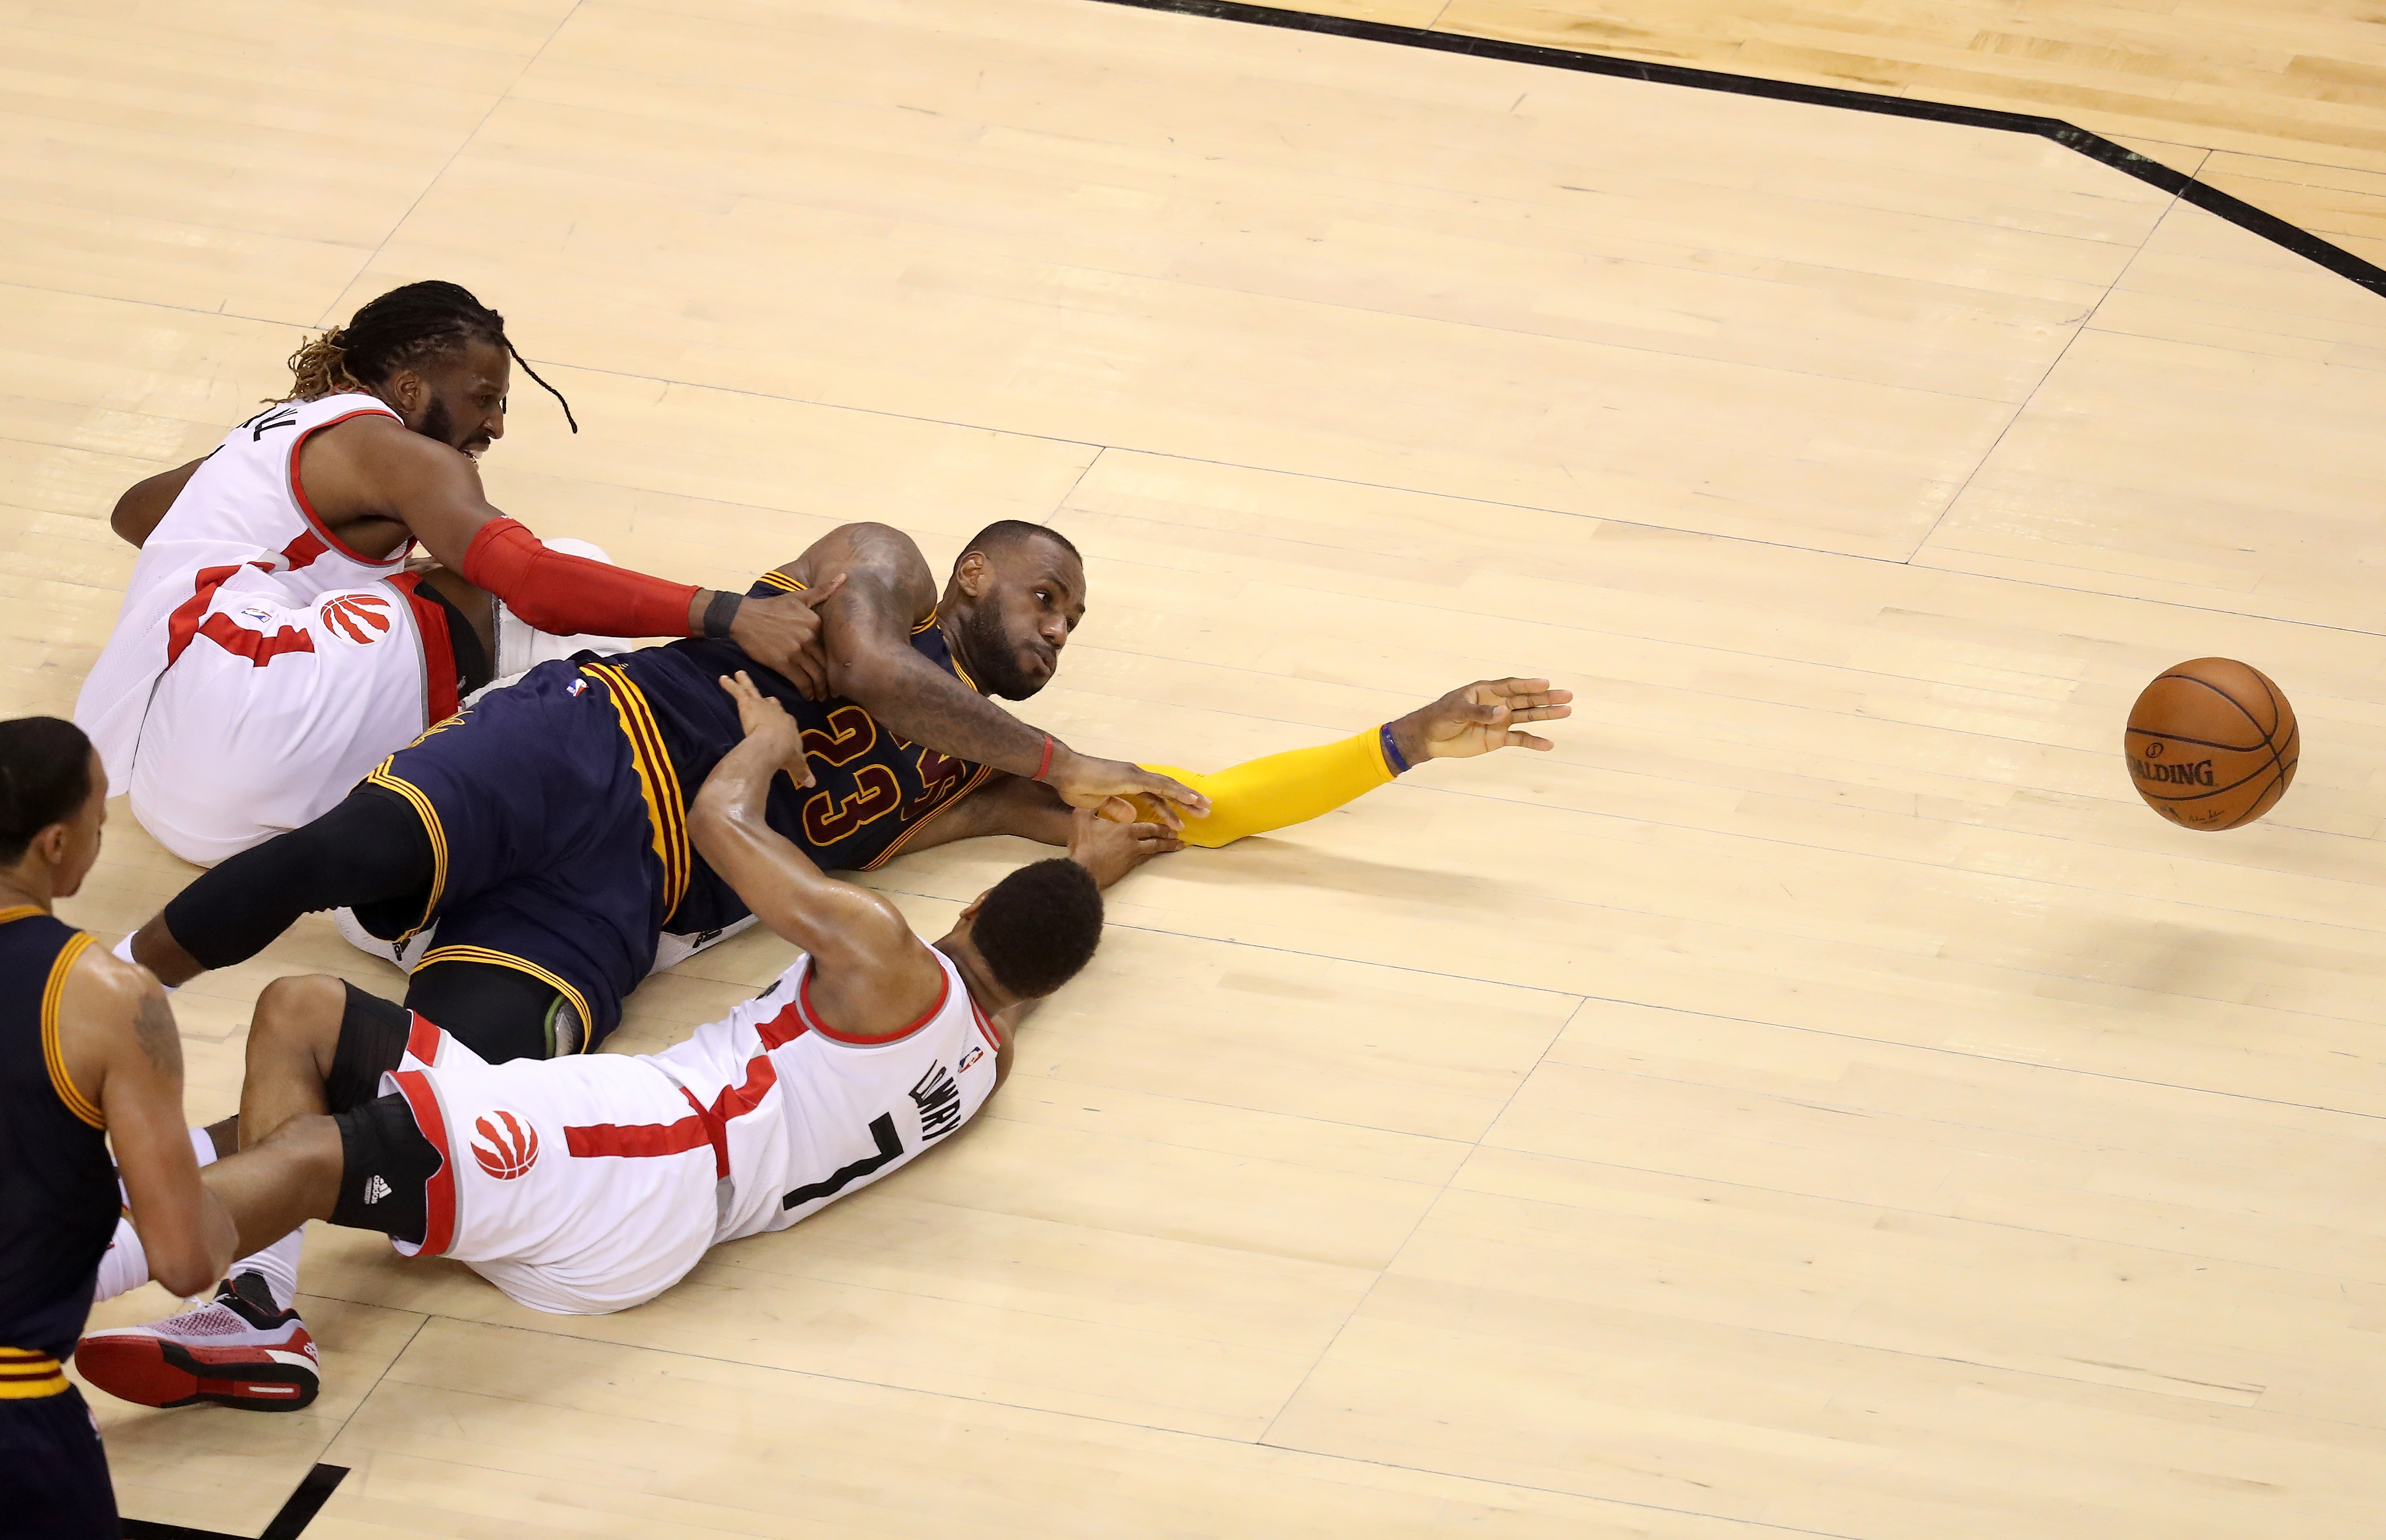 TORONTO, ON - MAY 23:  LeBron James #23 of the Cleveland Cavaliers competes for a loose ball late in the game against DeMarre Carroll #5 and Kyle Lowry #7 of the Toronto Raptors in game four of the Eastern Conference Finals during the 2016 NBA Playoffs at